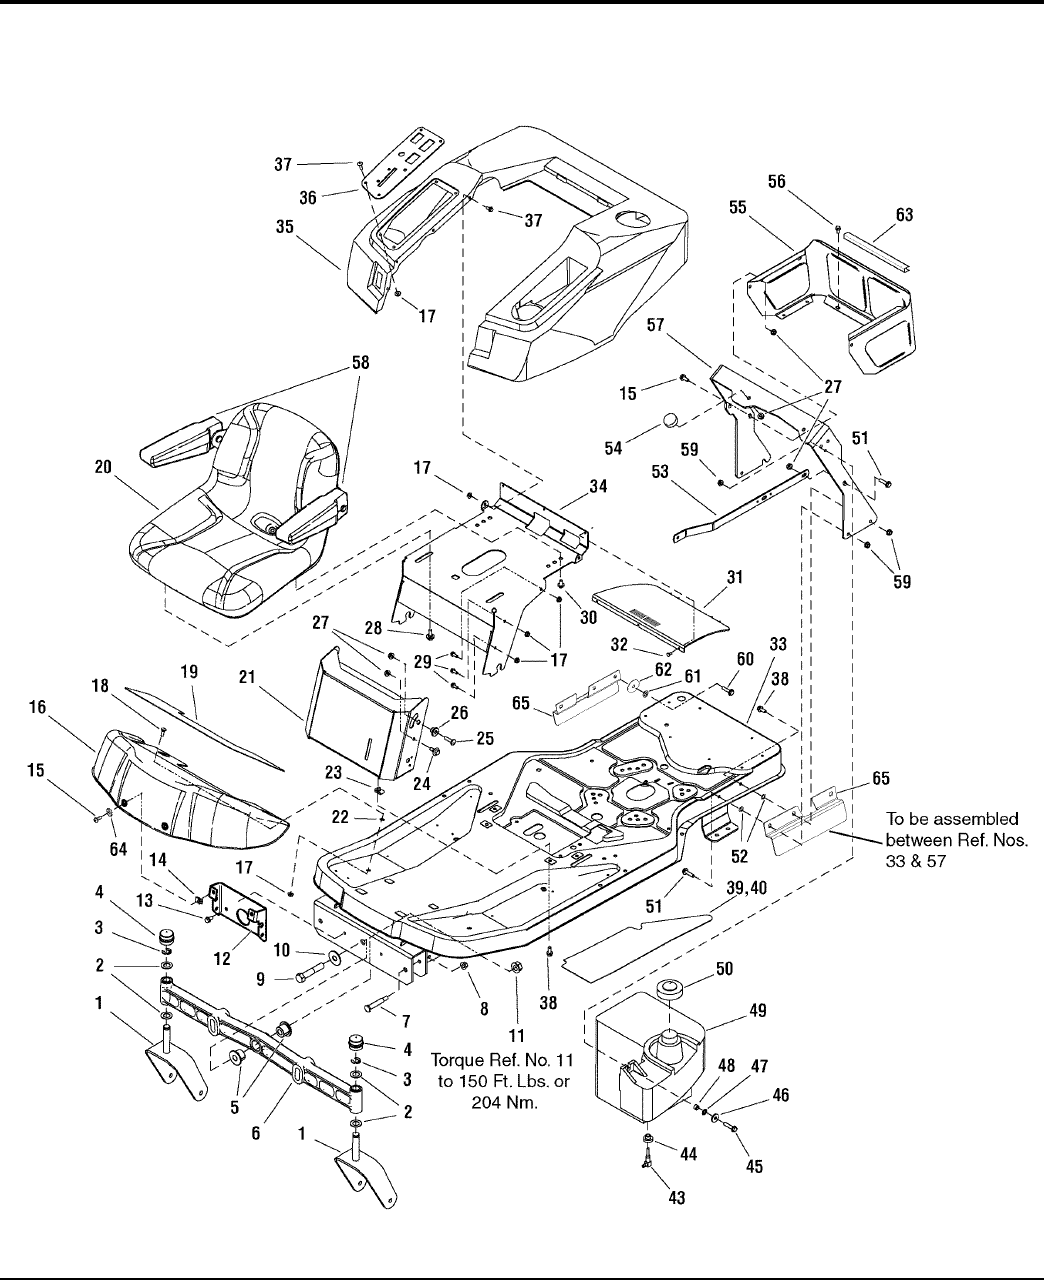 Page 6 of Simplicity Lawn Mower TP 400-4496-D-ZT-S User